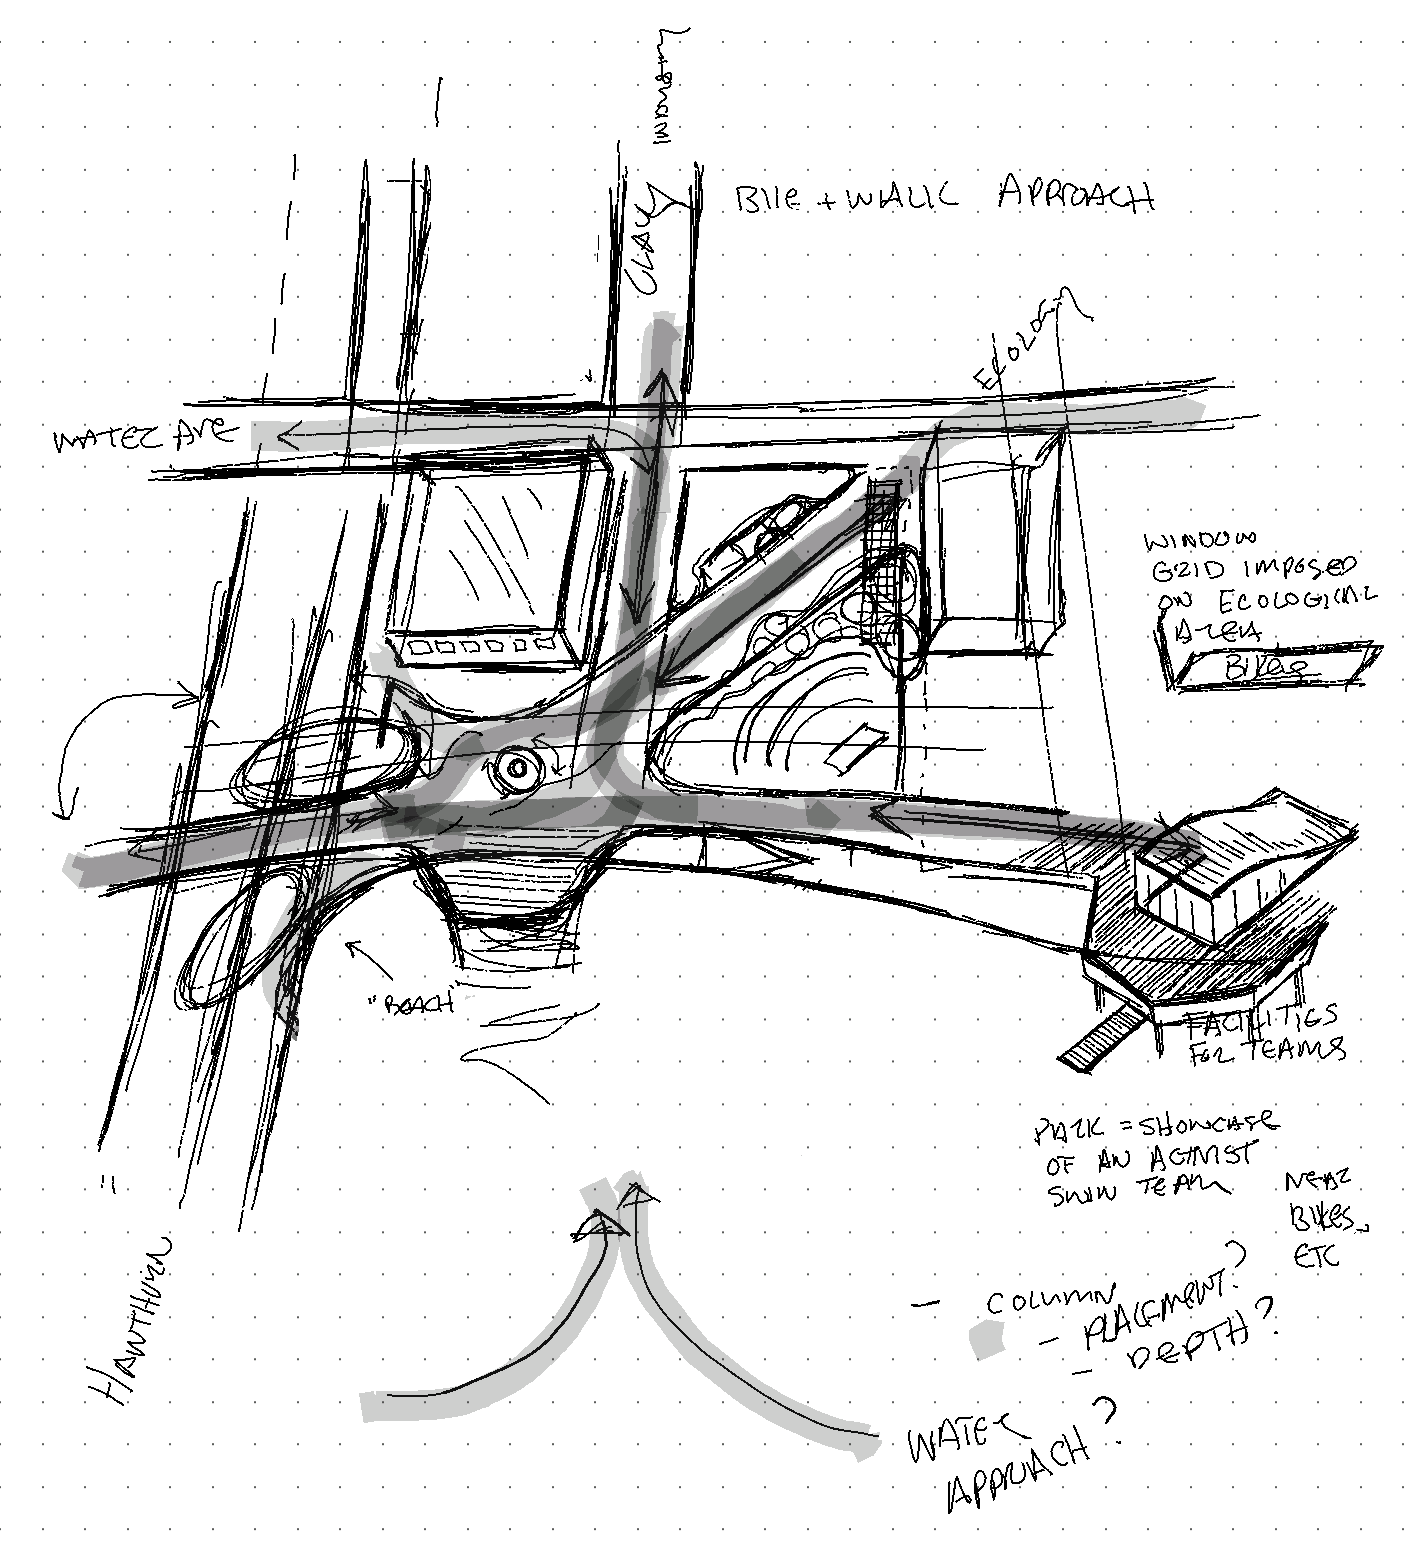 waterfront-site-flow-01.png